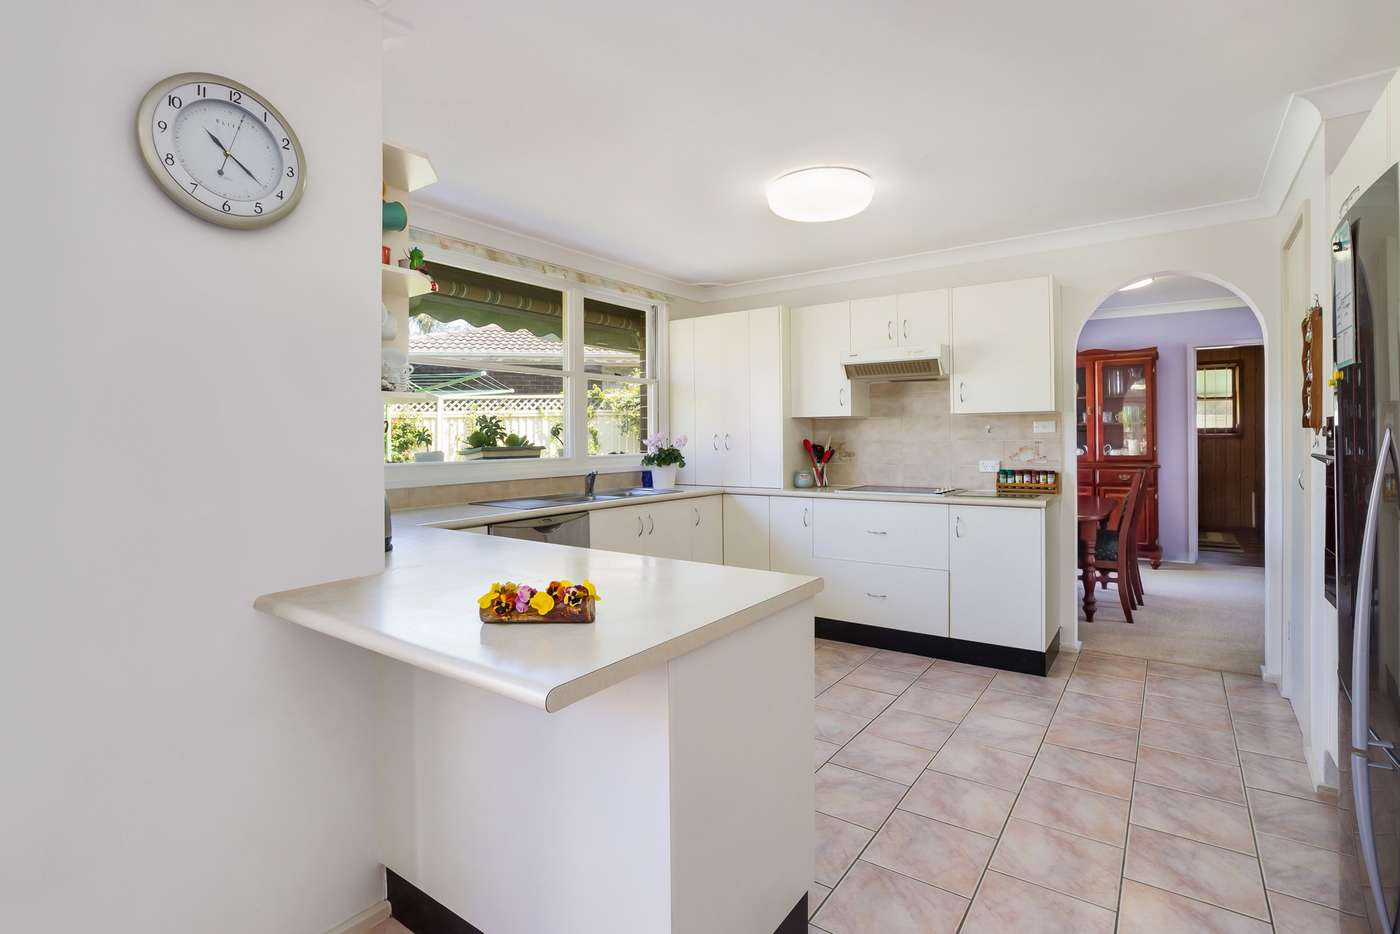 Fifth view of Homely house listing, 56 Windermere Avenue, Northmead NSW 2152